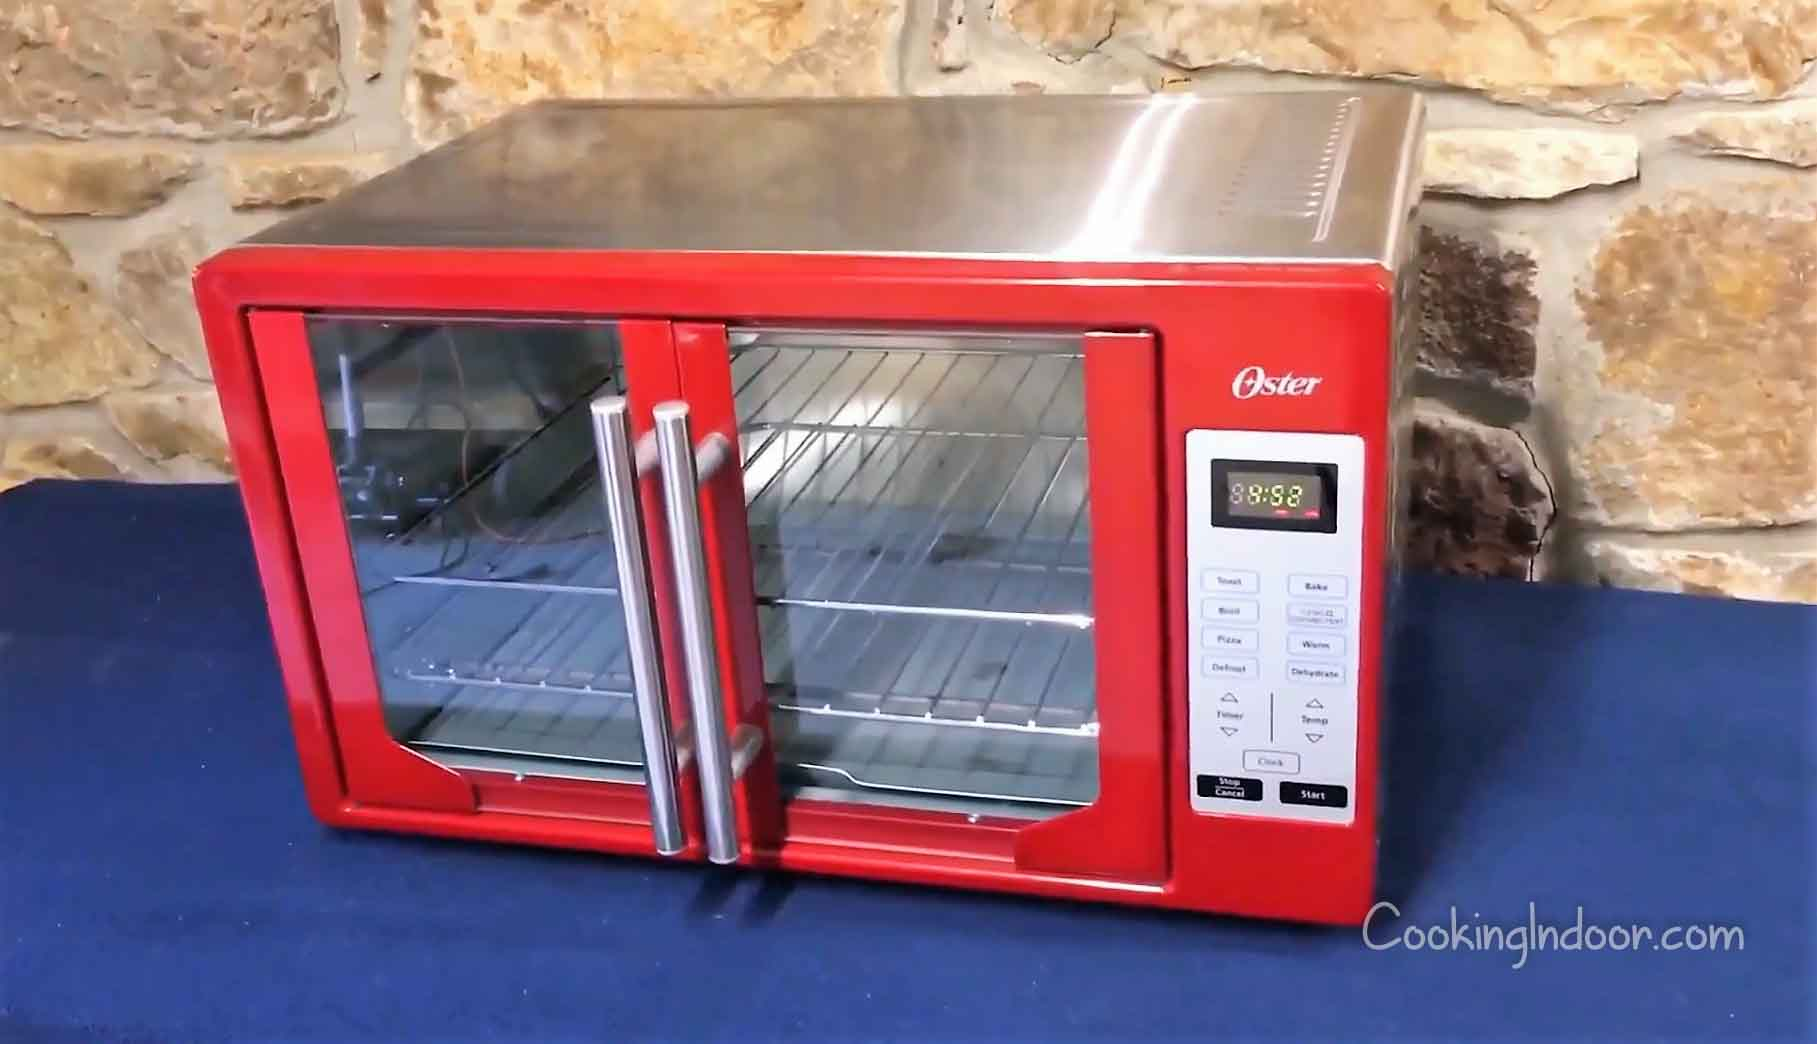 Best 2 door toaster oven